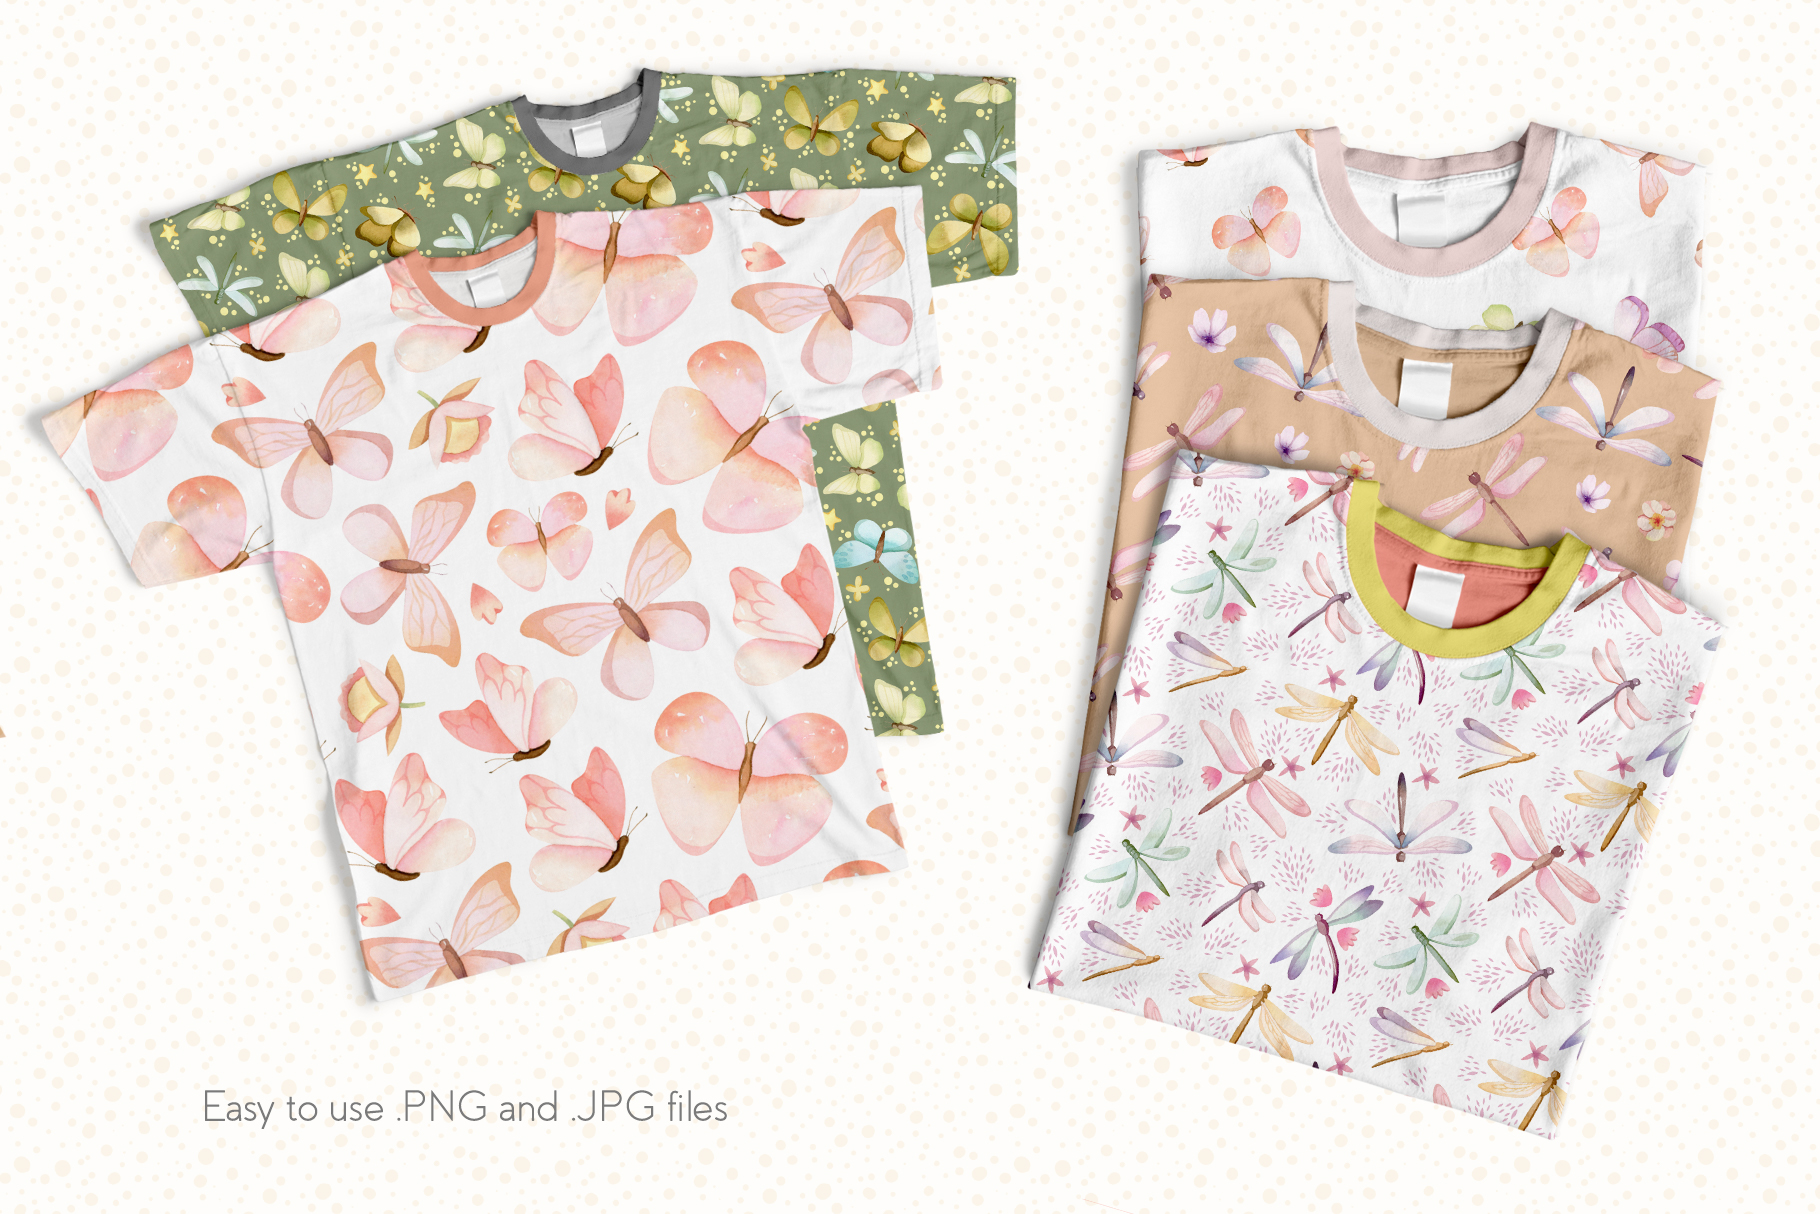 Butterflies and Dragonflies Patterns Collection example image 19